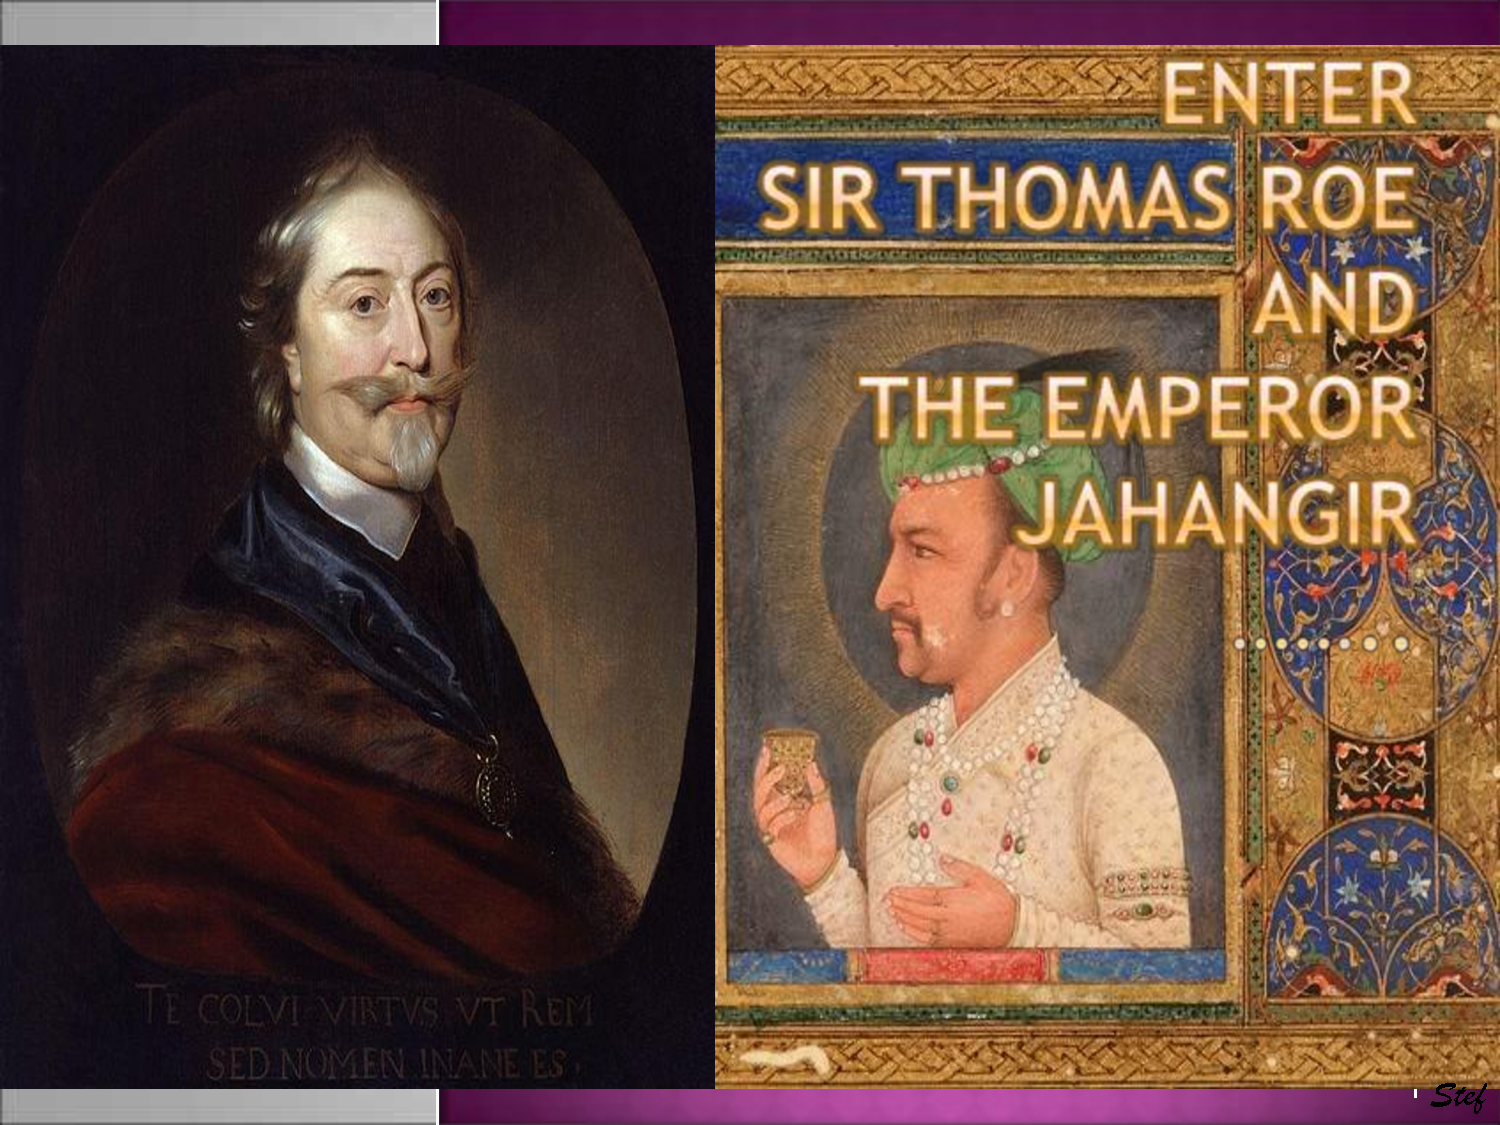 jahangir-sir-thomas-roe.png